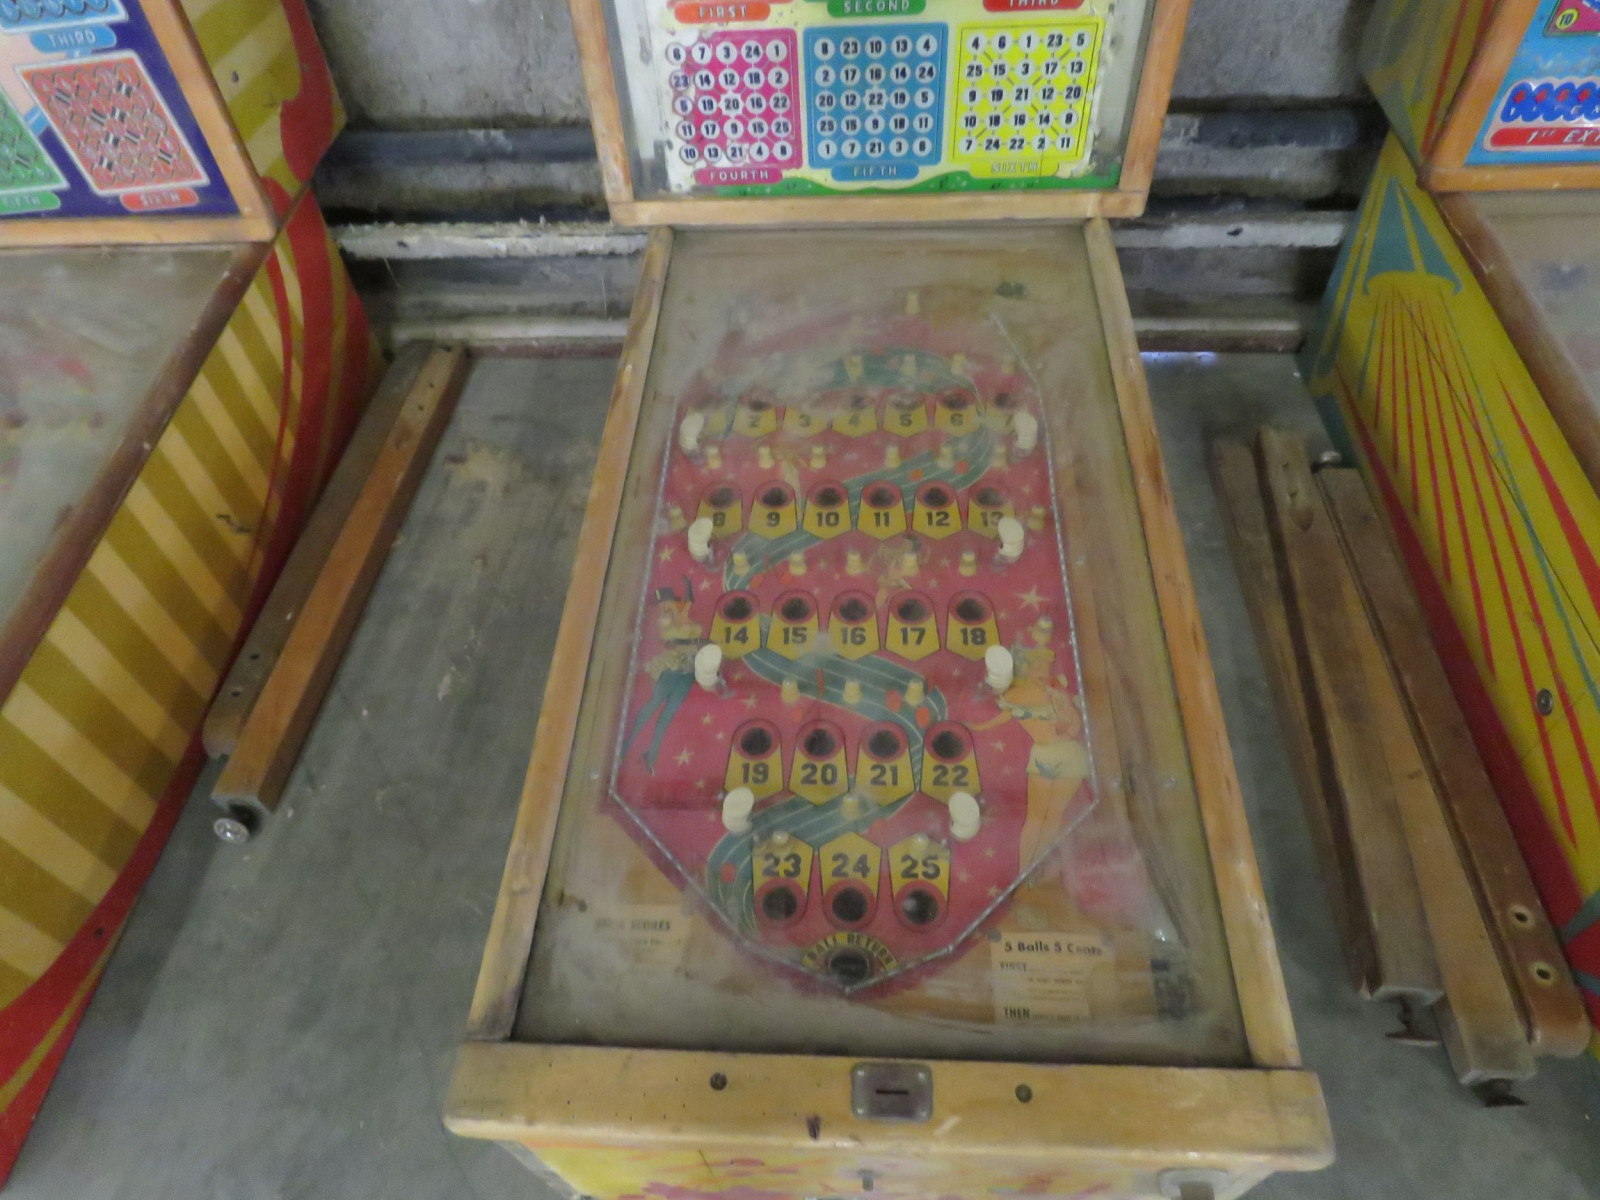 Vintage Bally Bright Spots Pinball Machine - Image 2